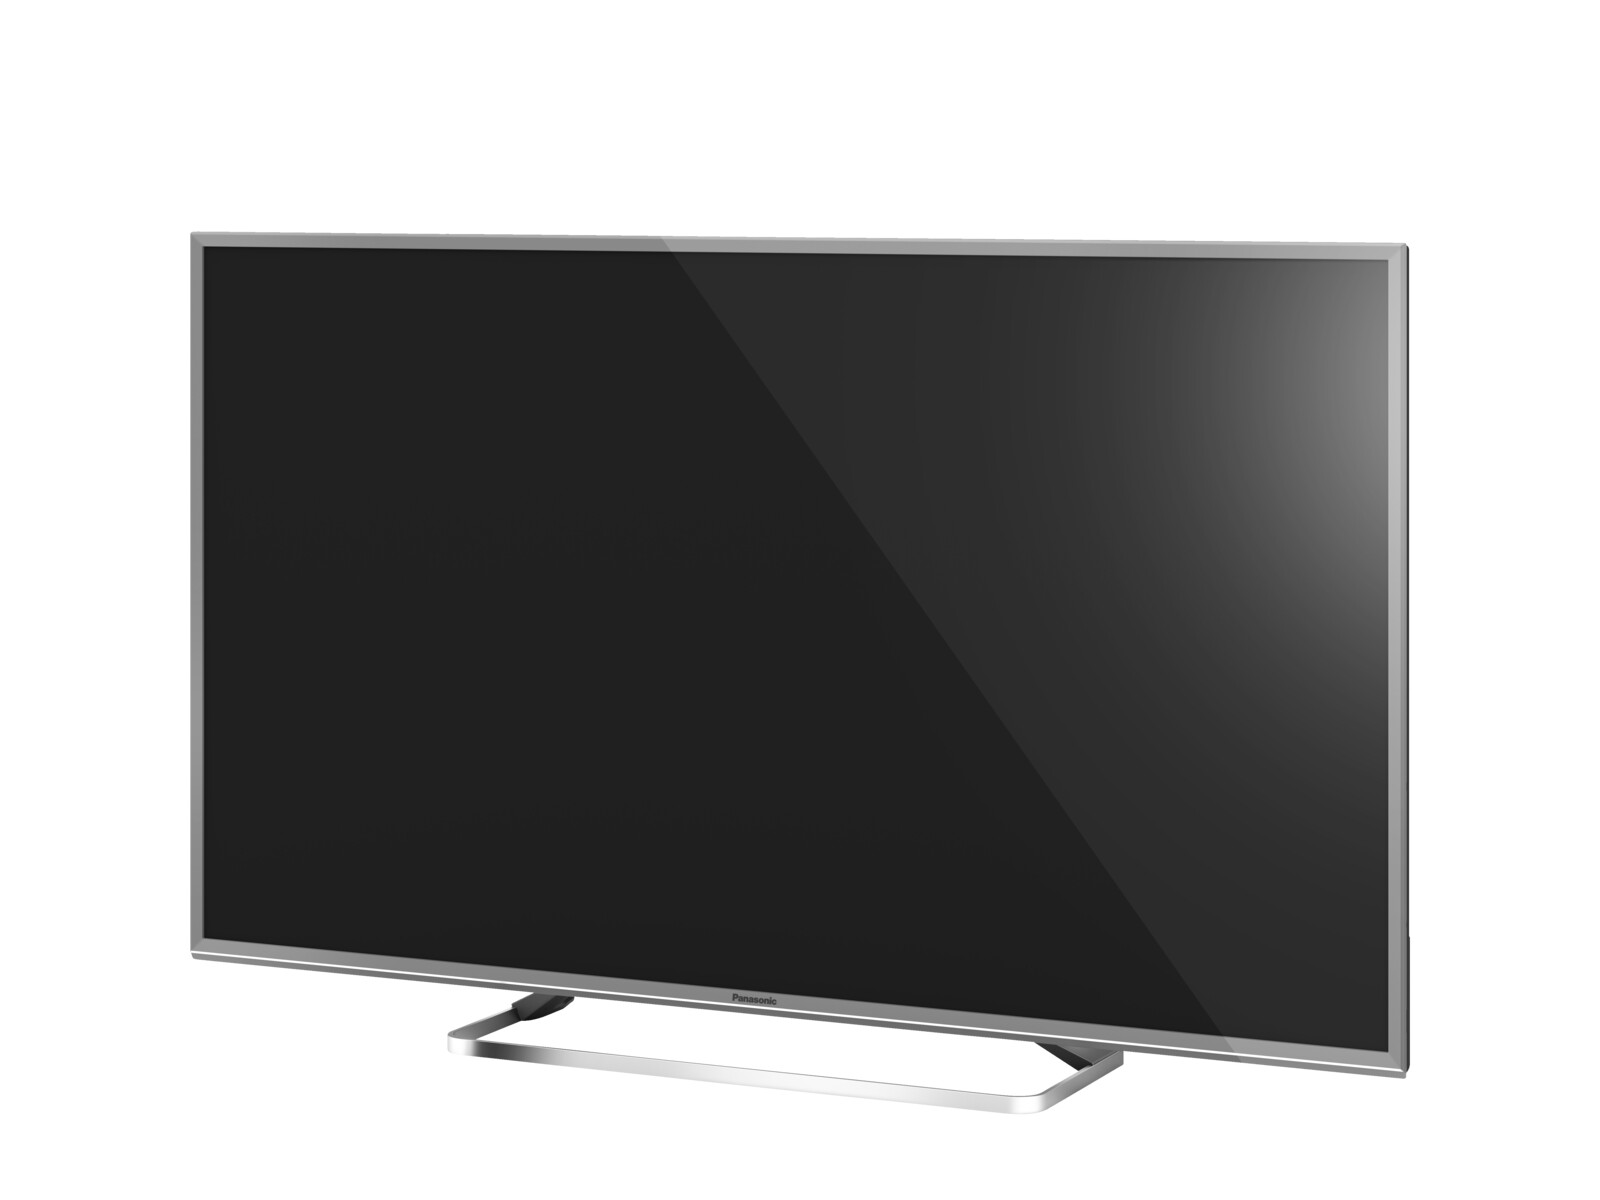 panasonic tx 43esw504 led tv flat 43 zoll full hd. Black Bedroom Furniture Sets. Home Design Ideas